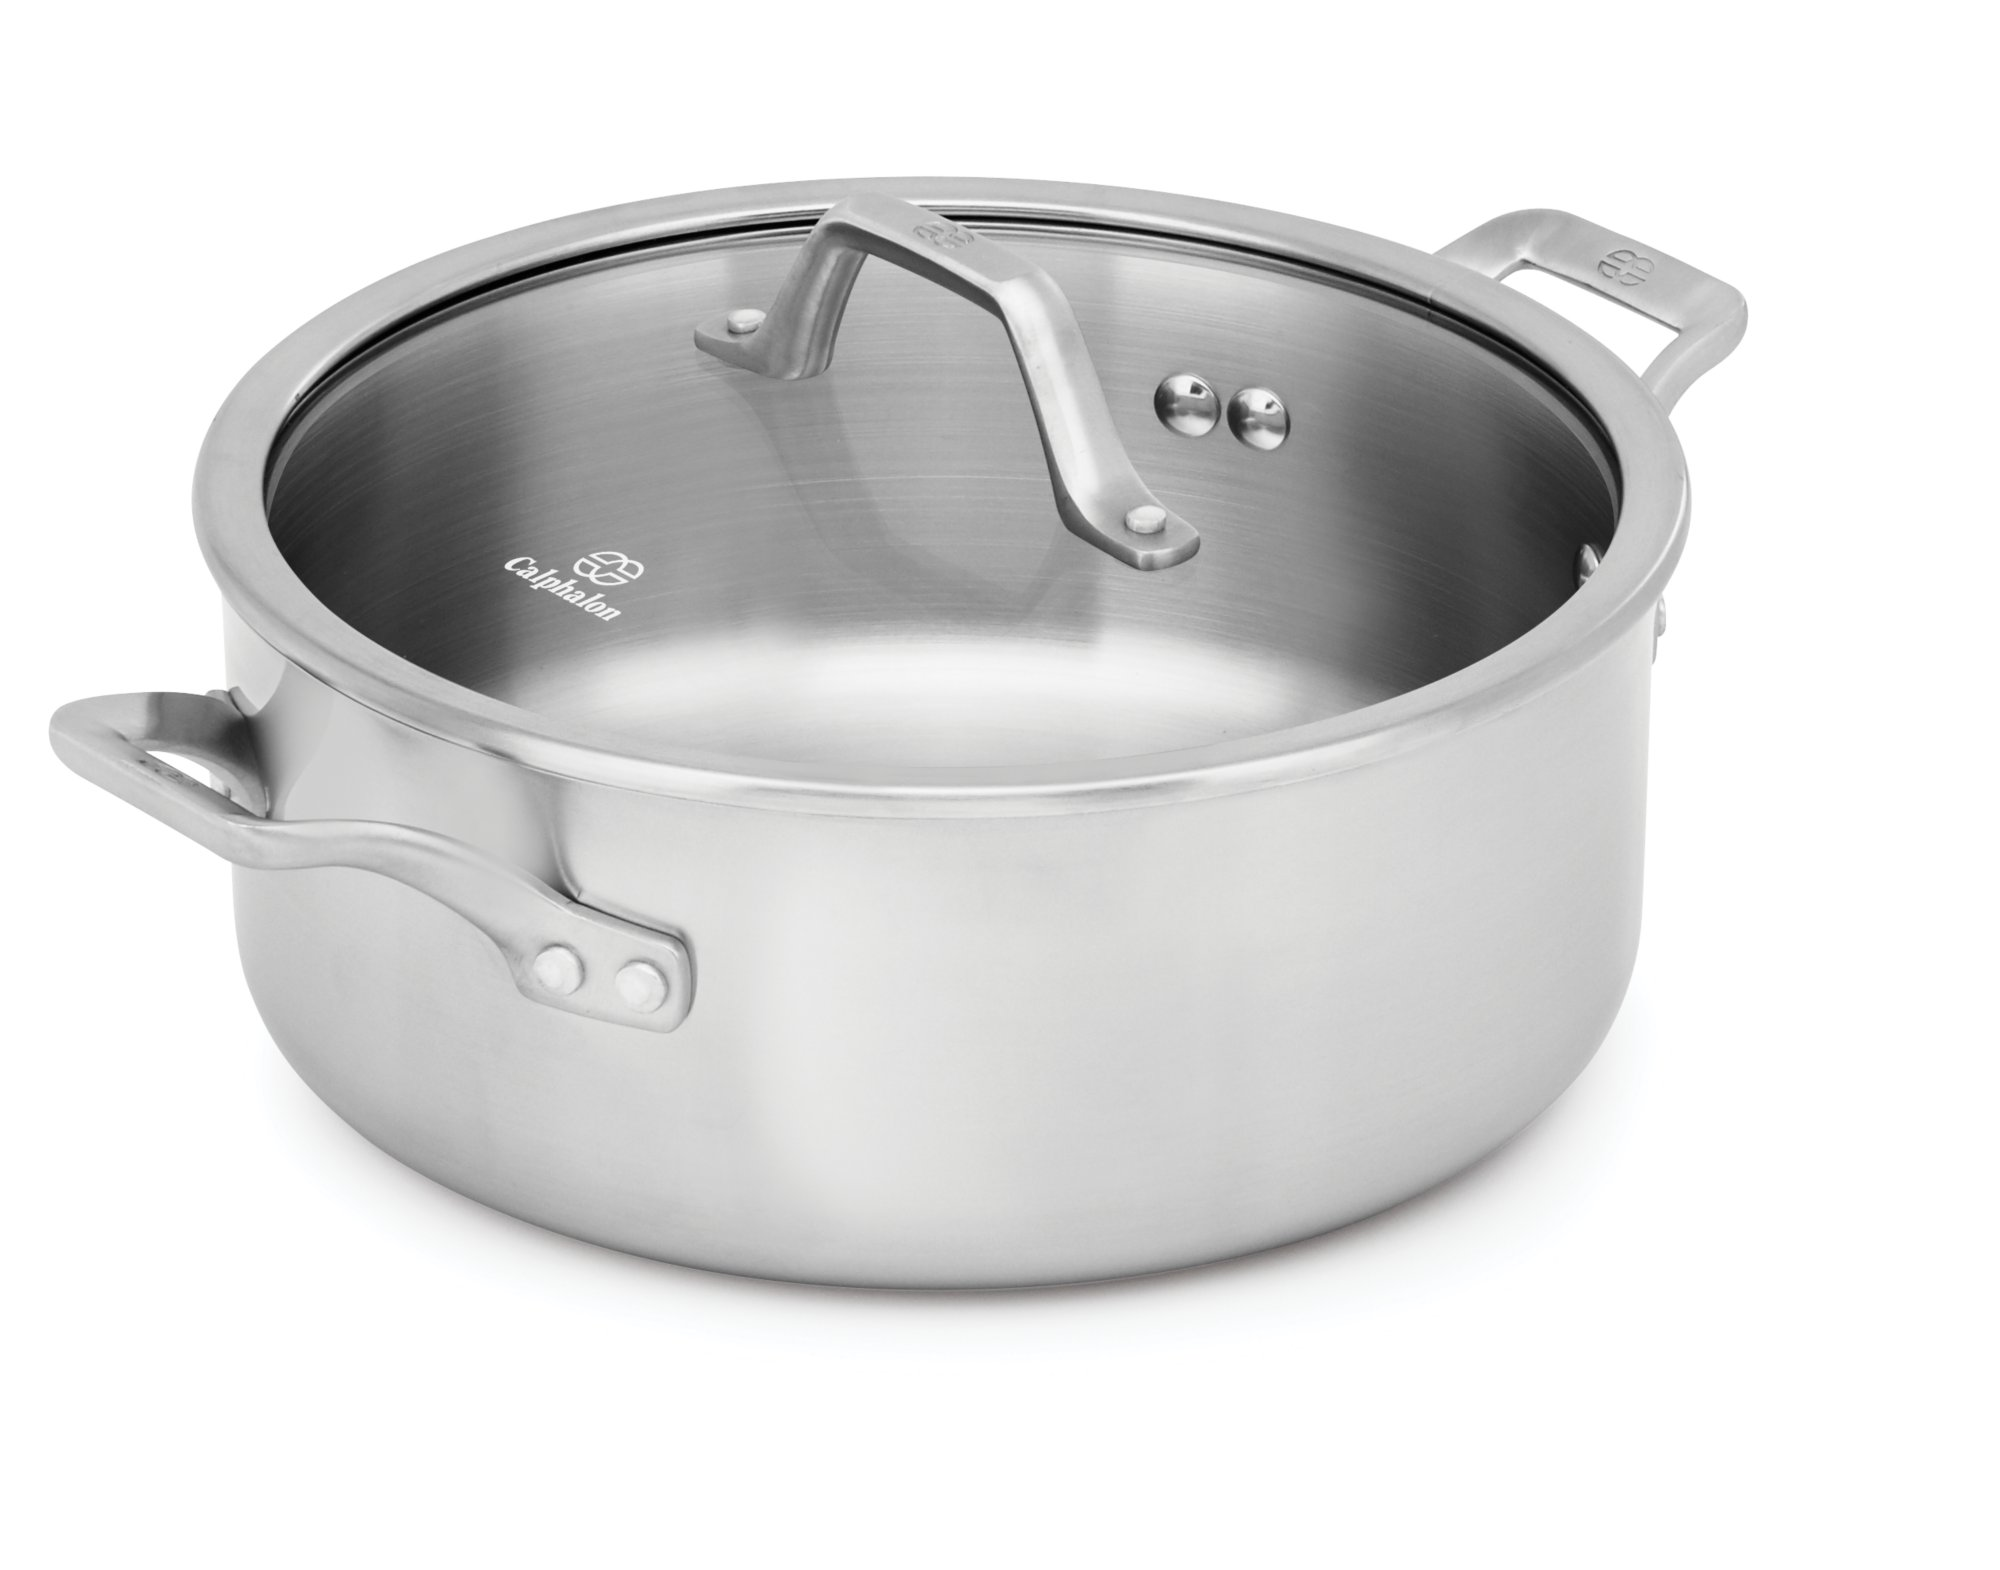 Calphalon Signature™ Stainless Steel 5-qt. Dutch Oven with Cover